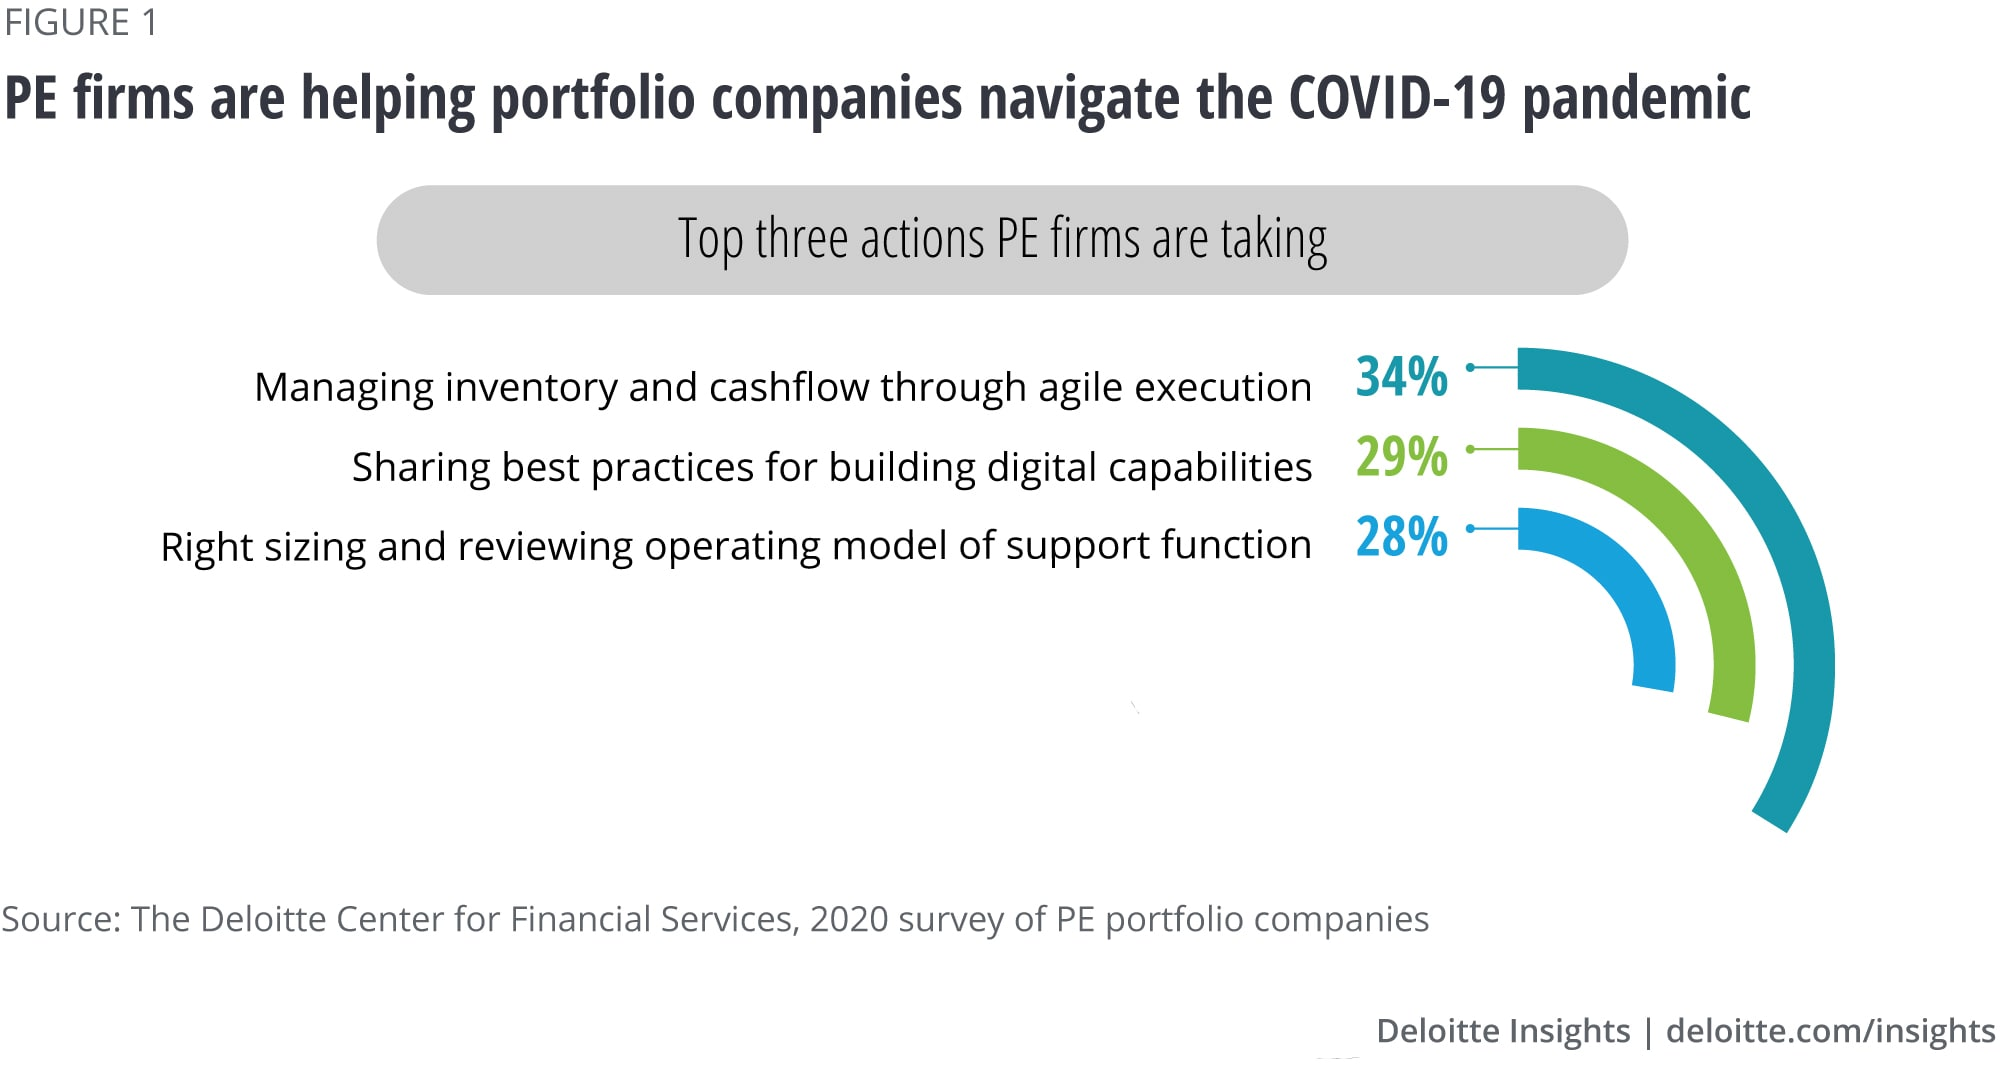 Top actions taken by PE firms to help portfolio companies